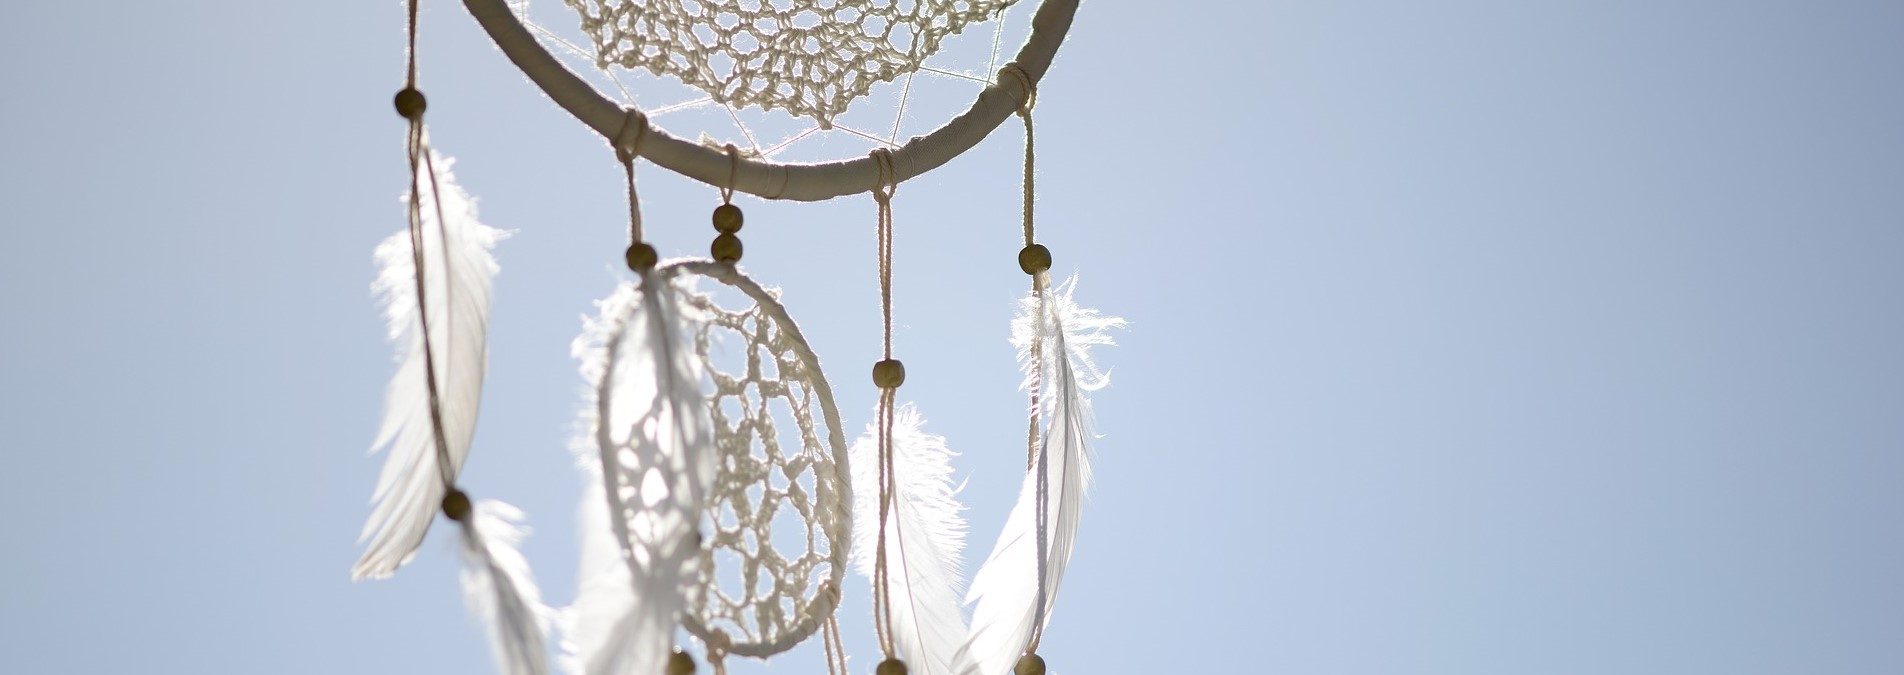 dream catcher 4063231 1920